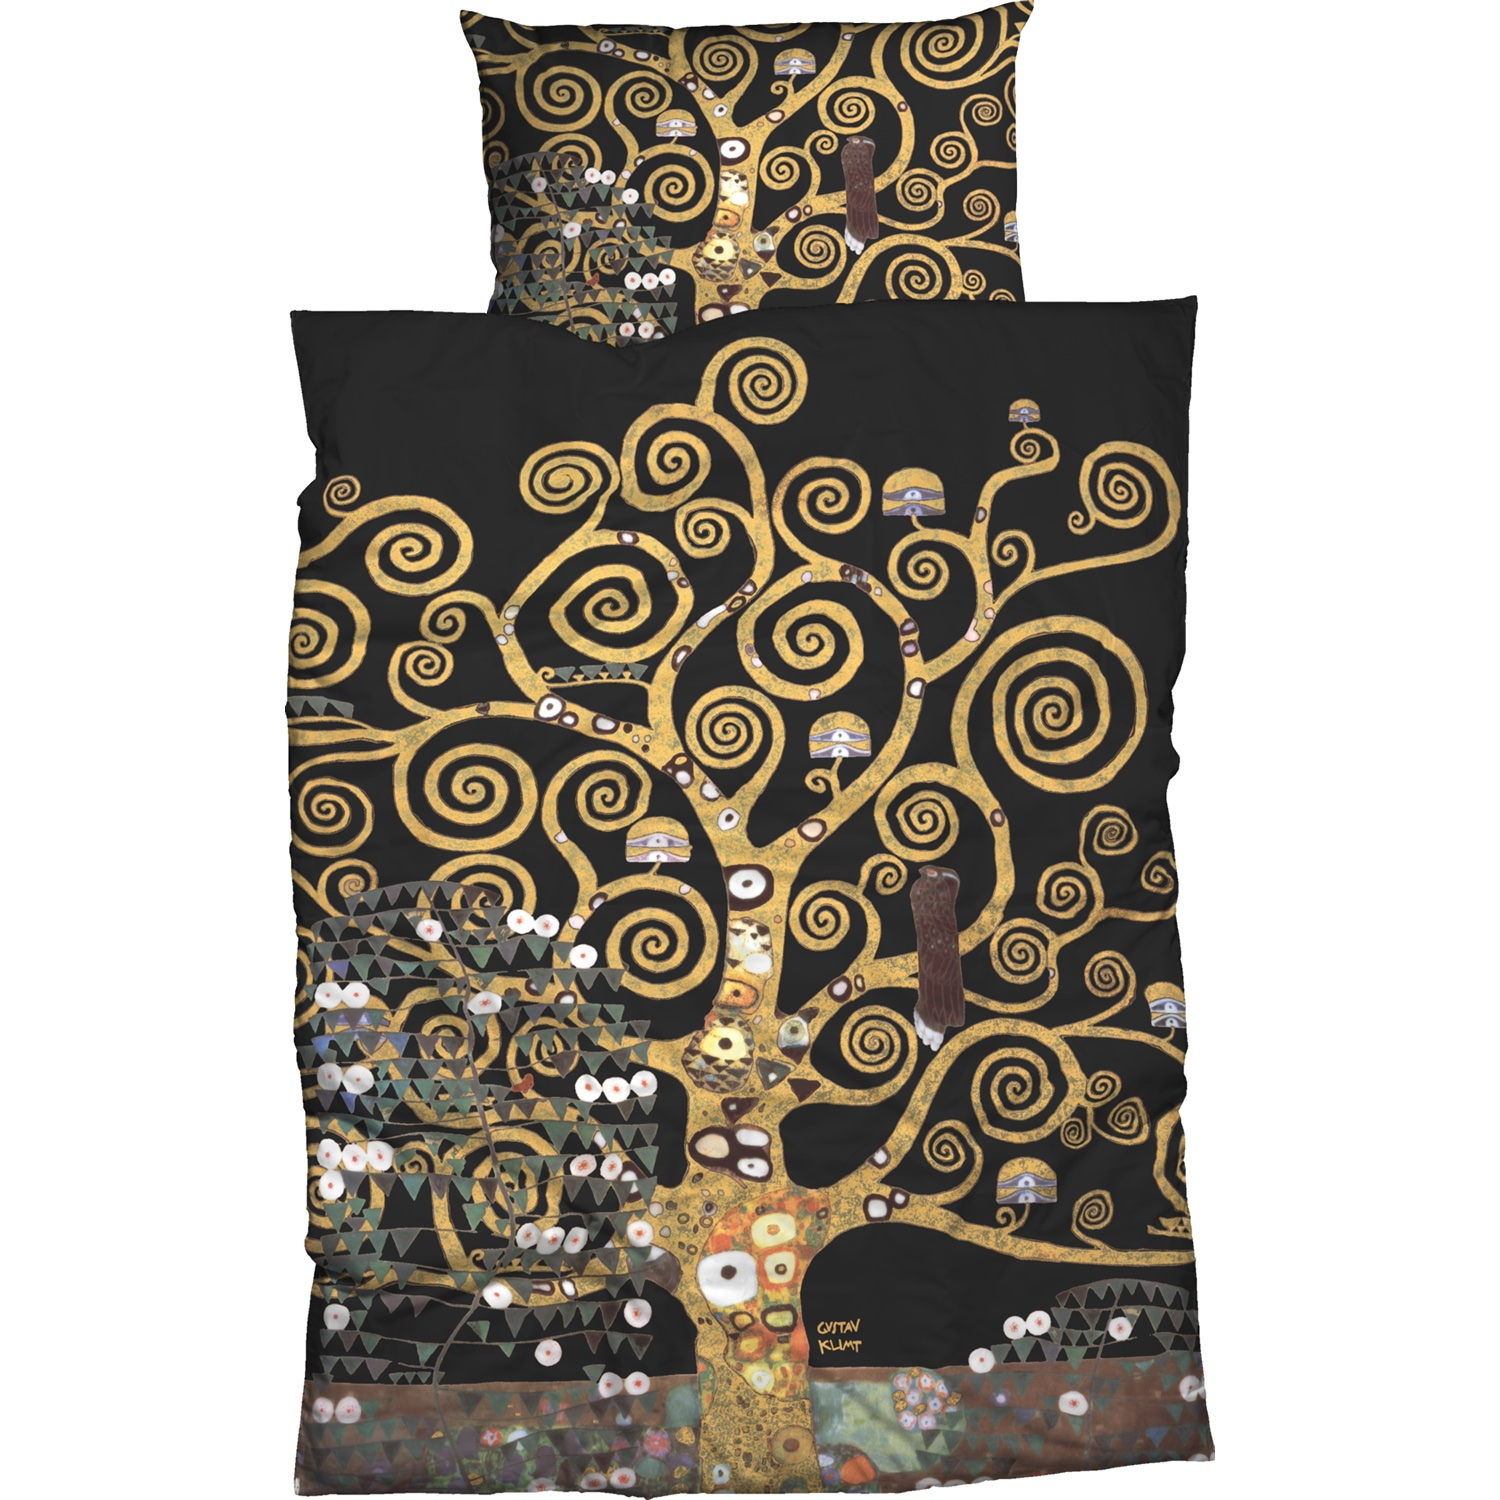 gustav klimt bettw sche lebensbaum schwarz gold satin. Black Bedroom Furniture Sets. Home Design Ideas